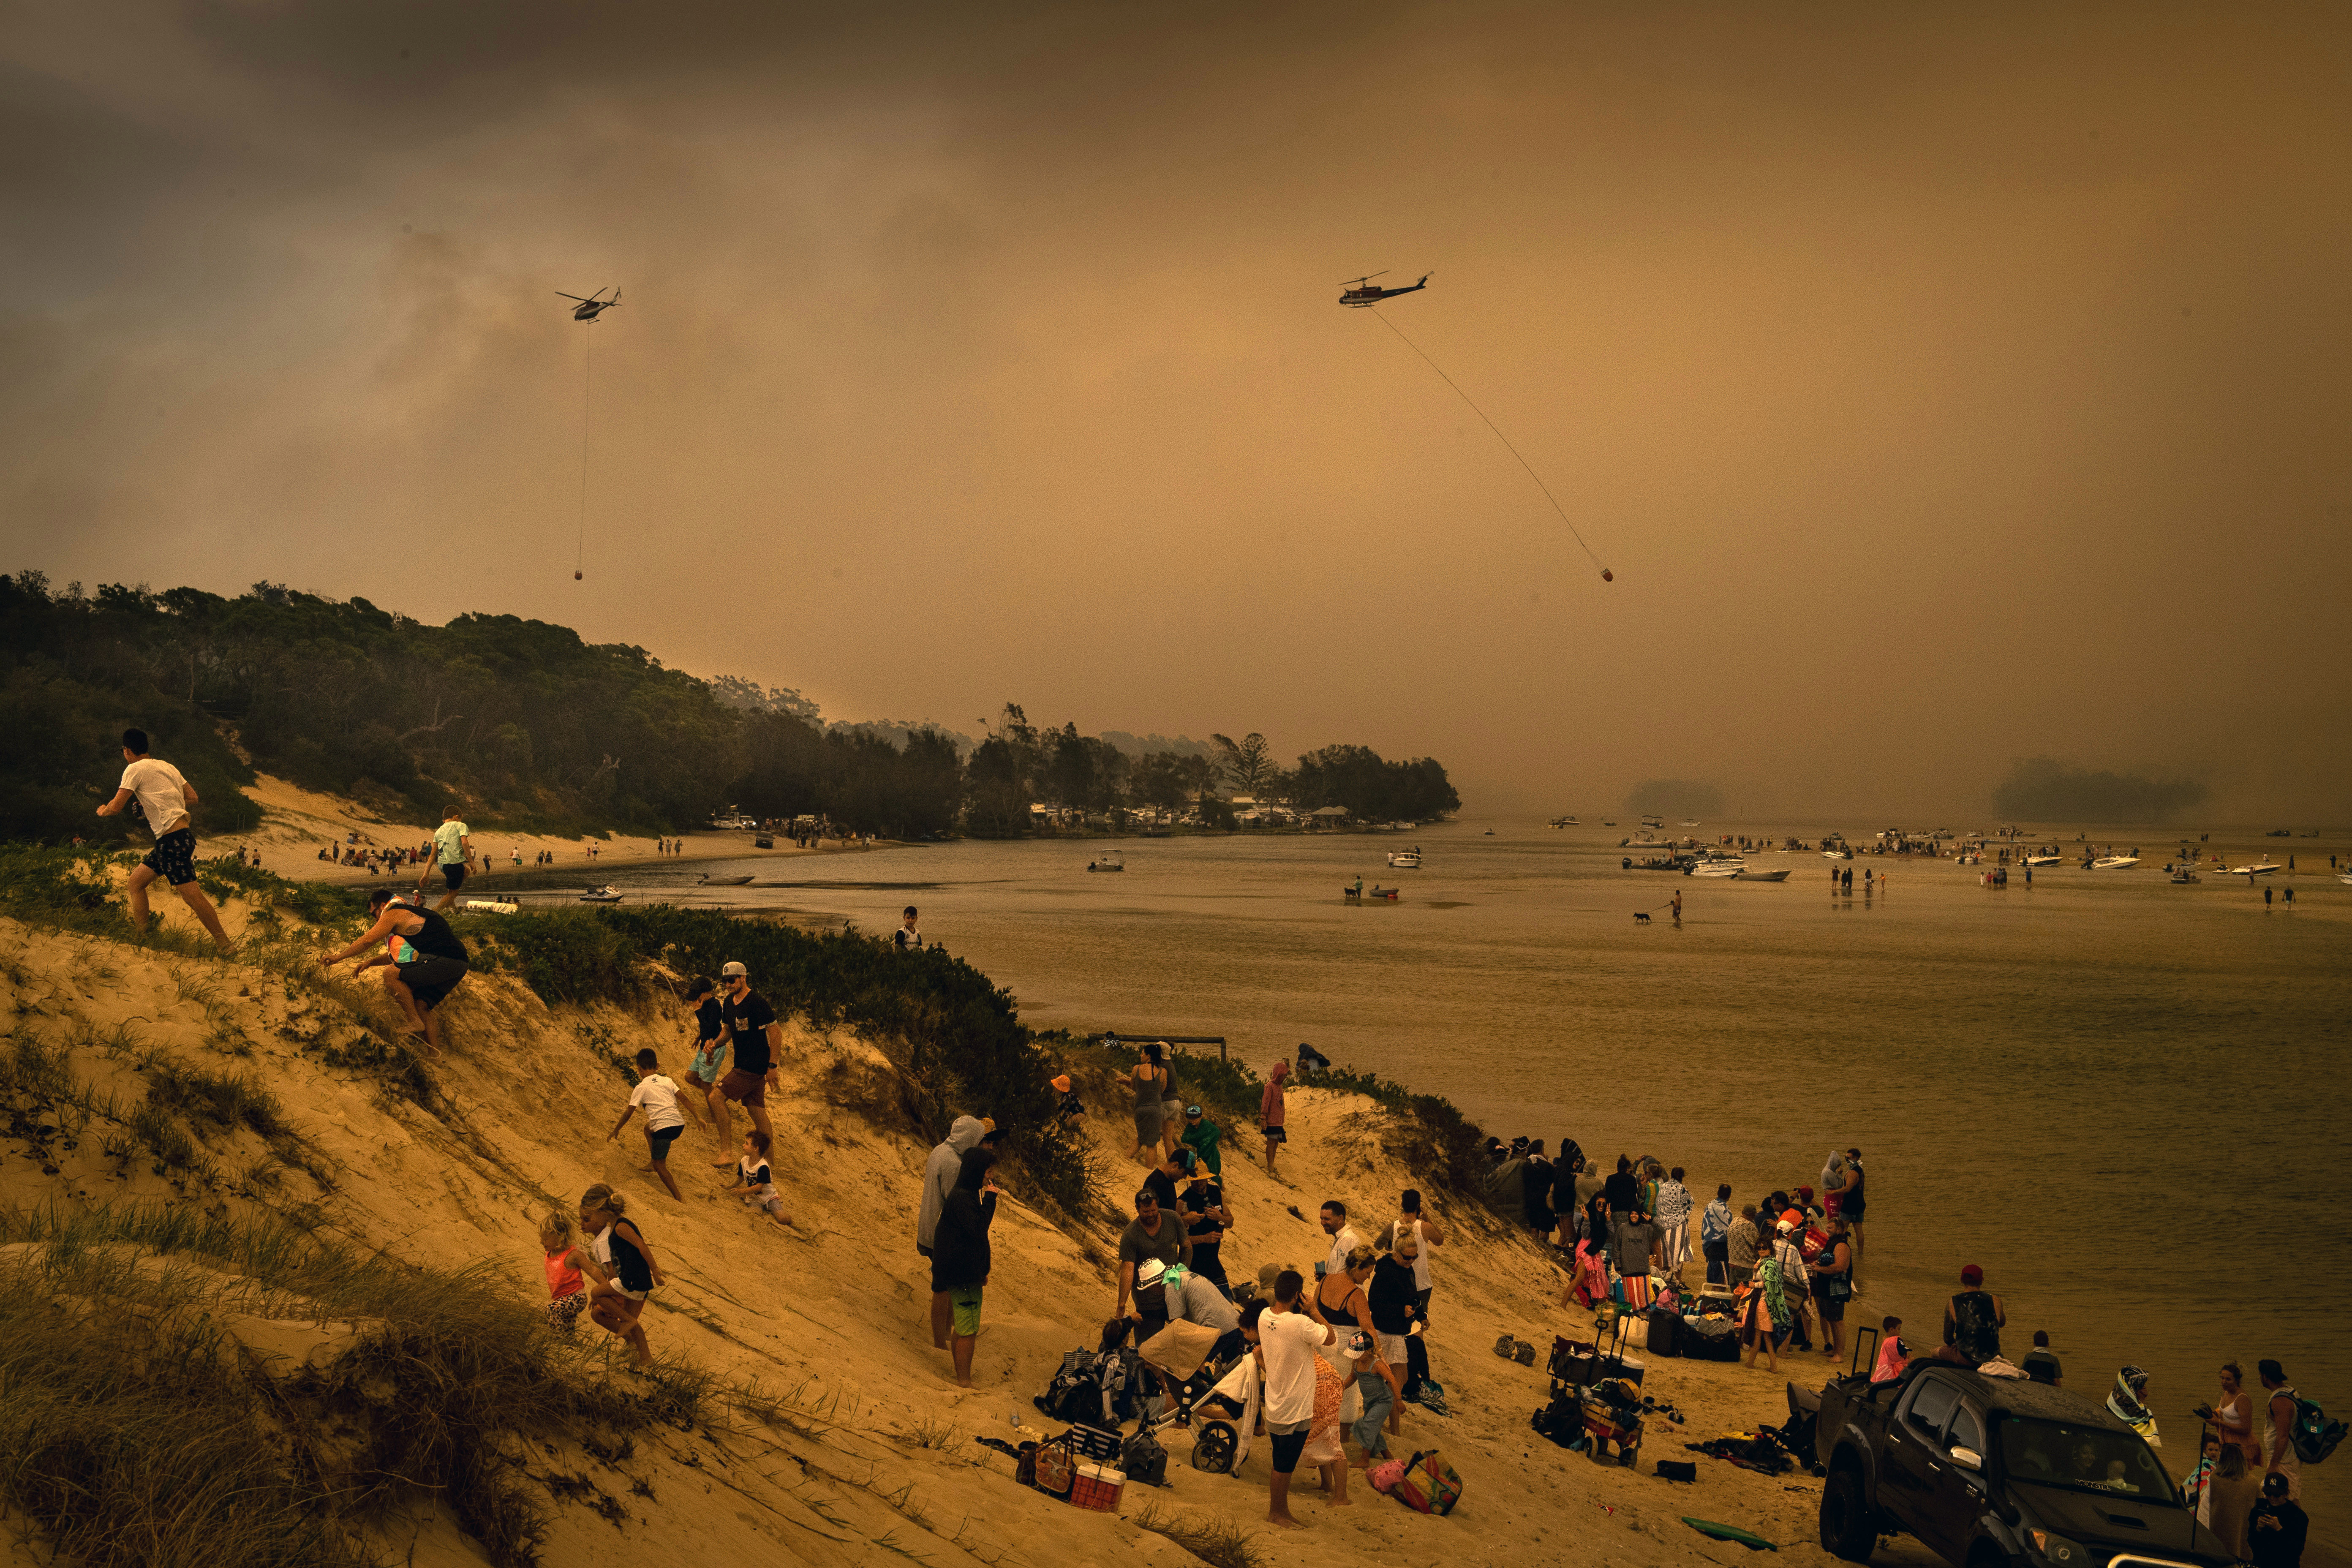 Hundreds of people are waiting to be evacuated from the beach at Mallacoota, Victoria